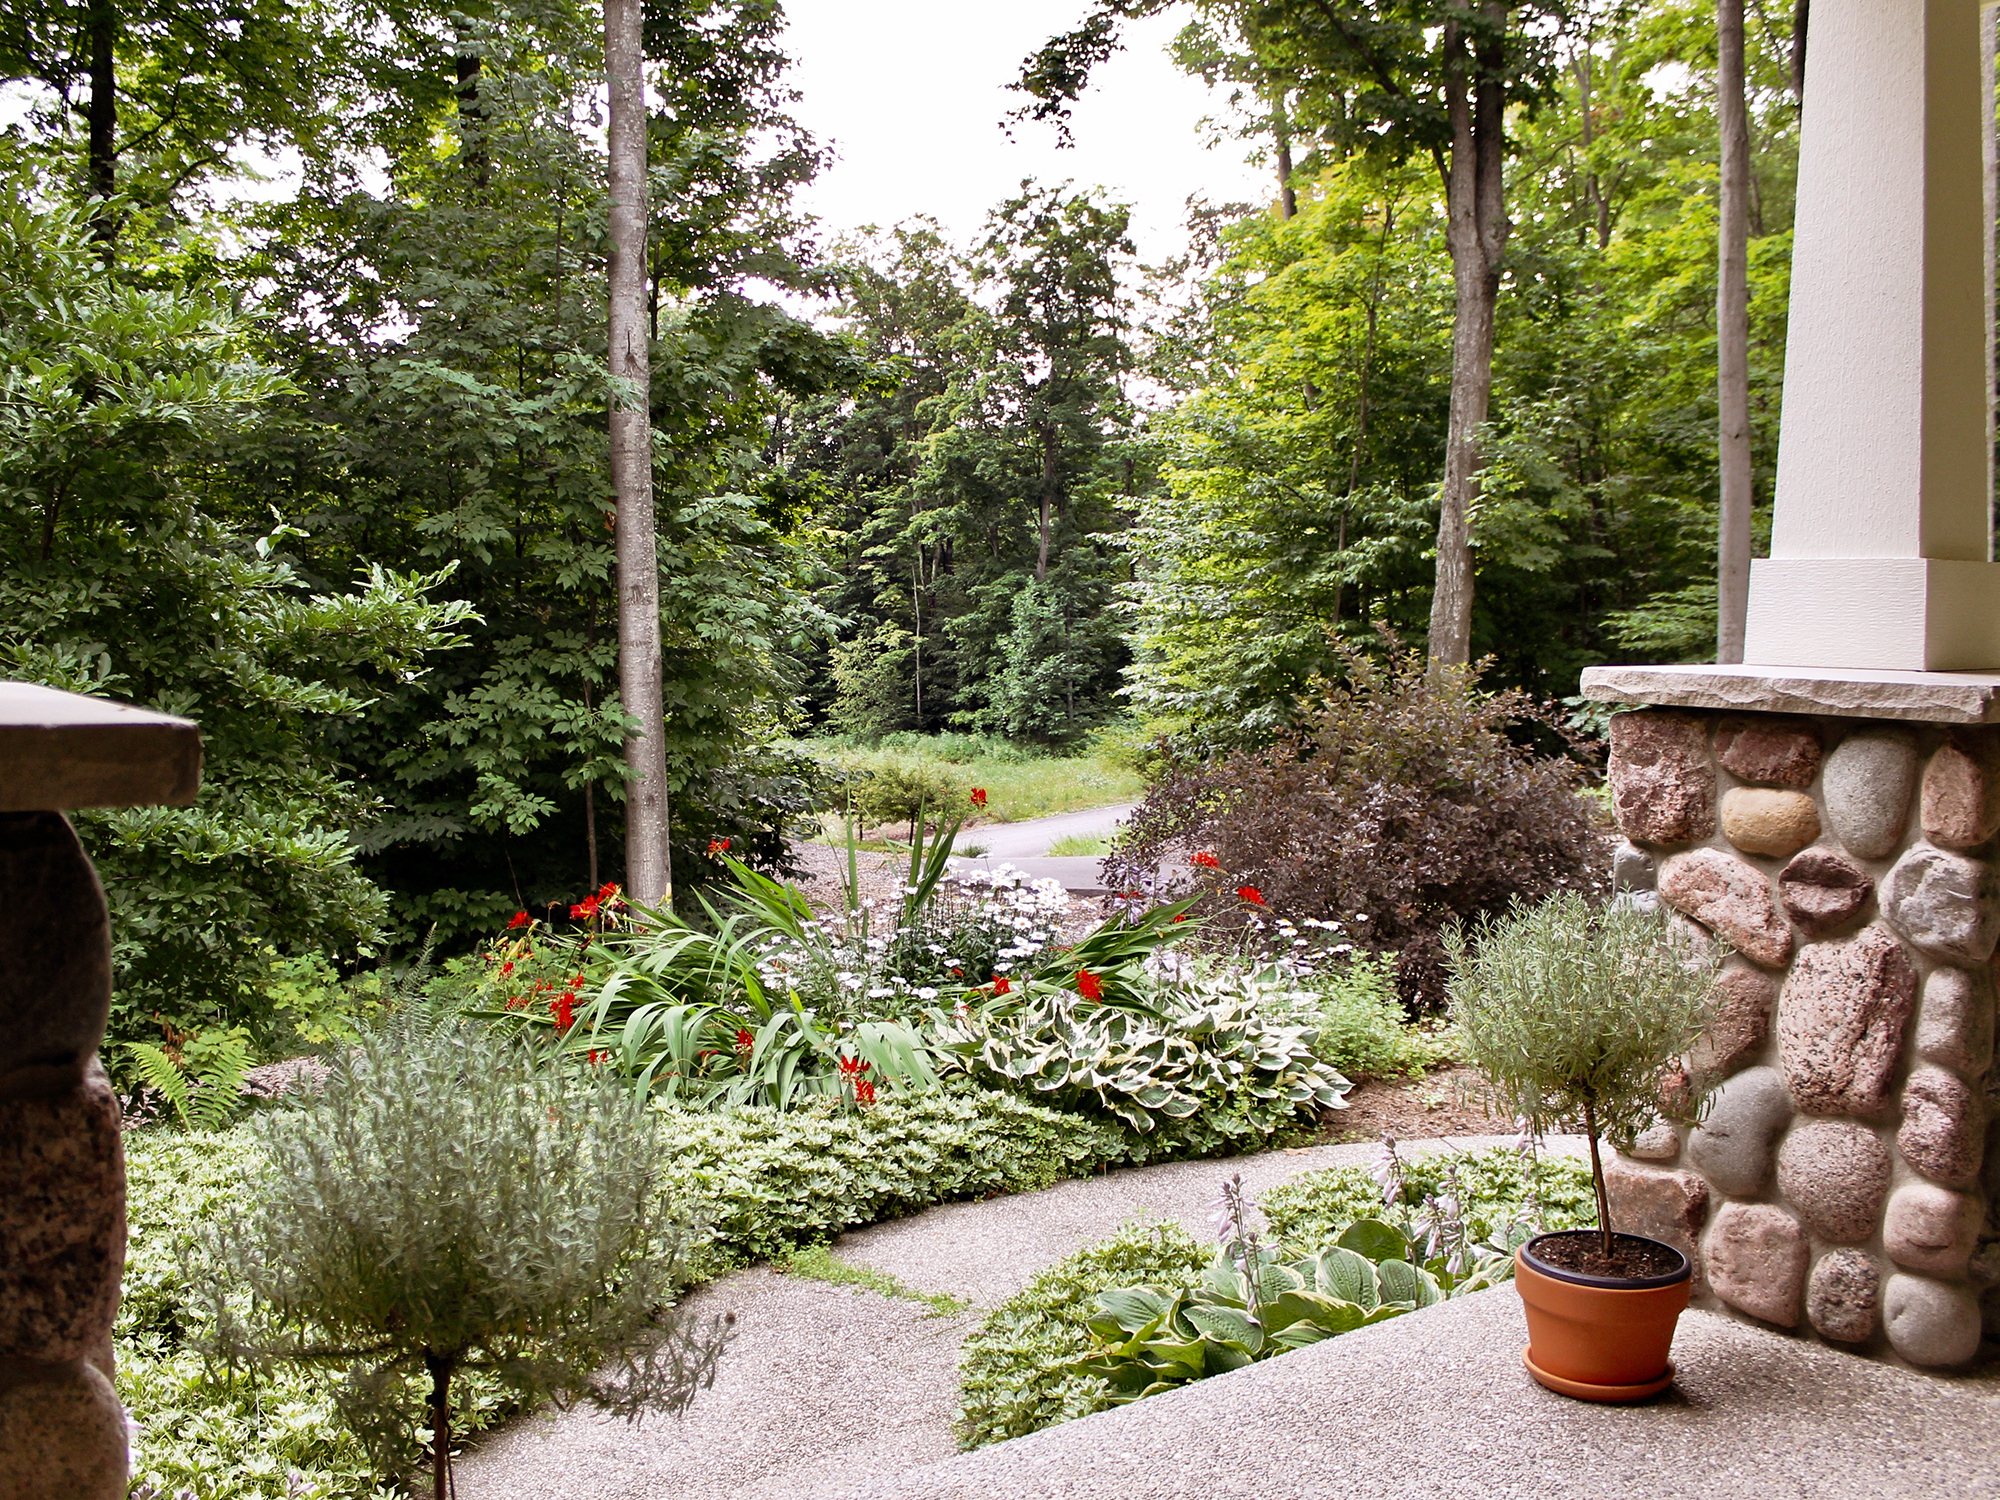 view from new construction home in Glen Arbor Northern Michigan residential on wooded lot